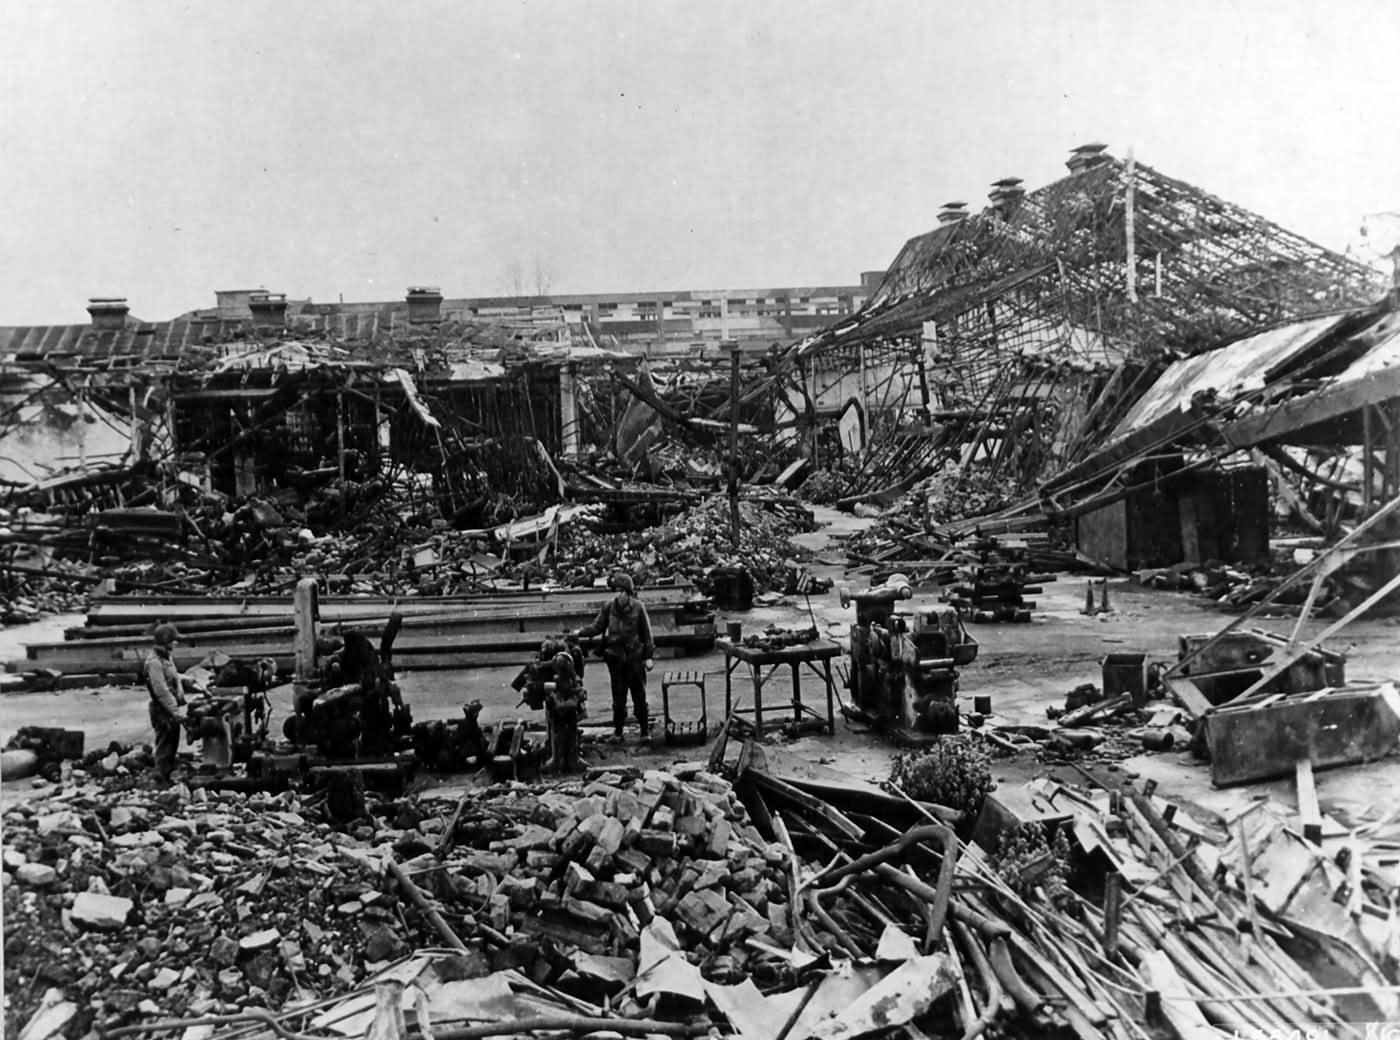 Matford Factory in Strasbourg after a two minute bombing 1945